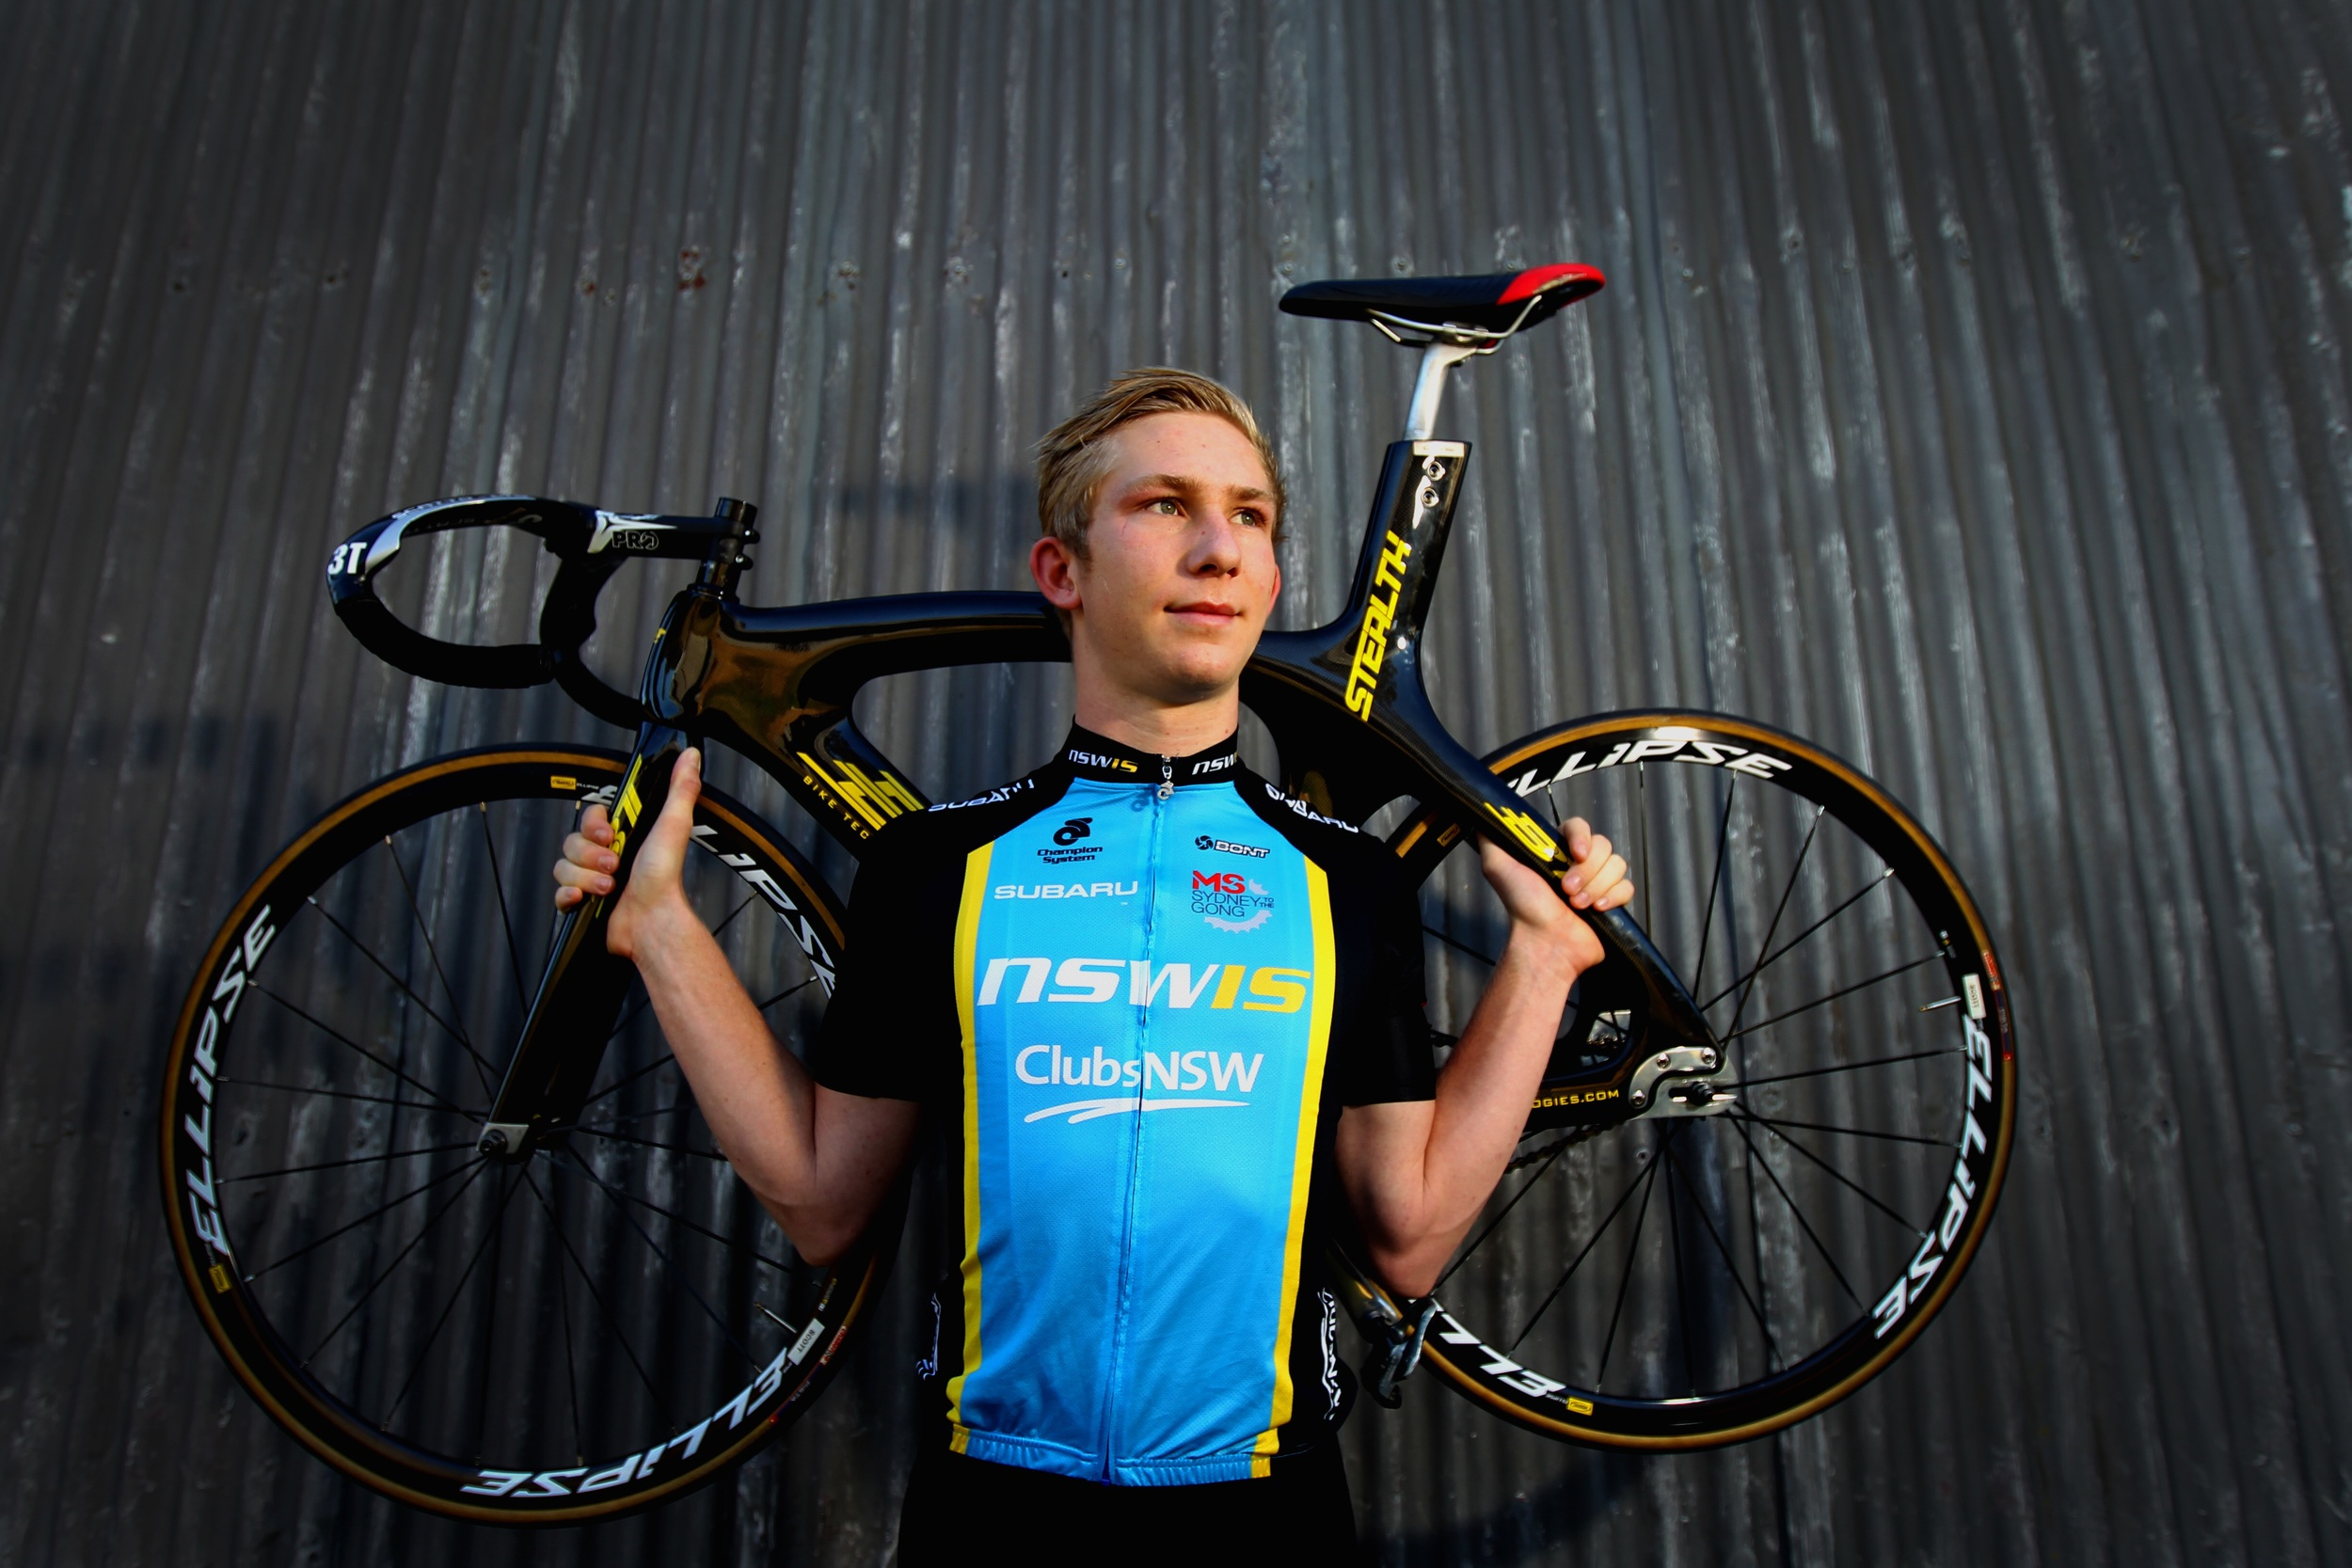 Cameron, a multiple Australian age-group champion in track cycling, has been selected in the national team and will represent Australia inKazakhstan.